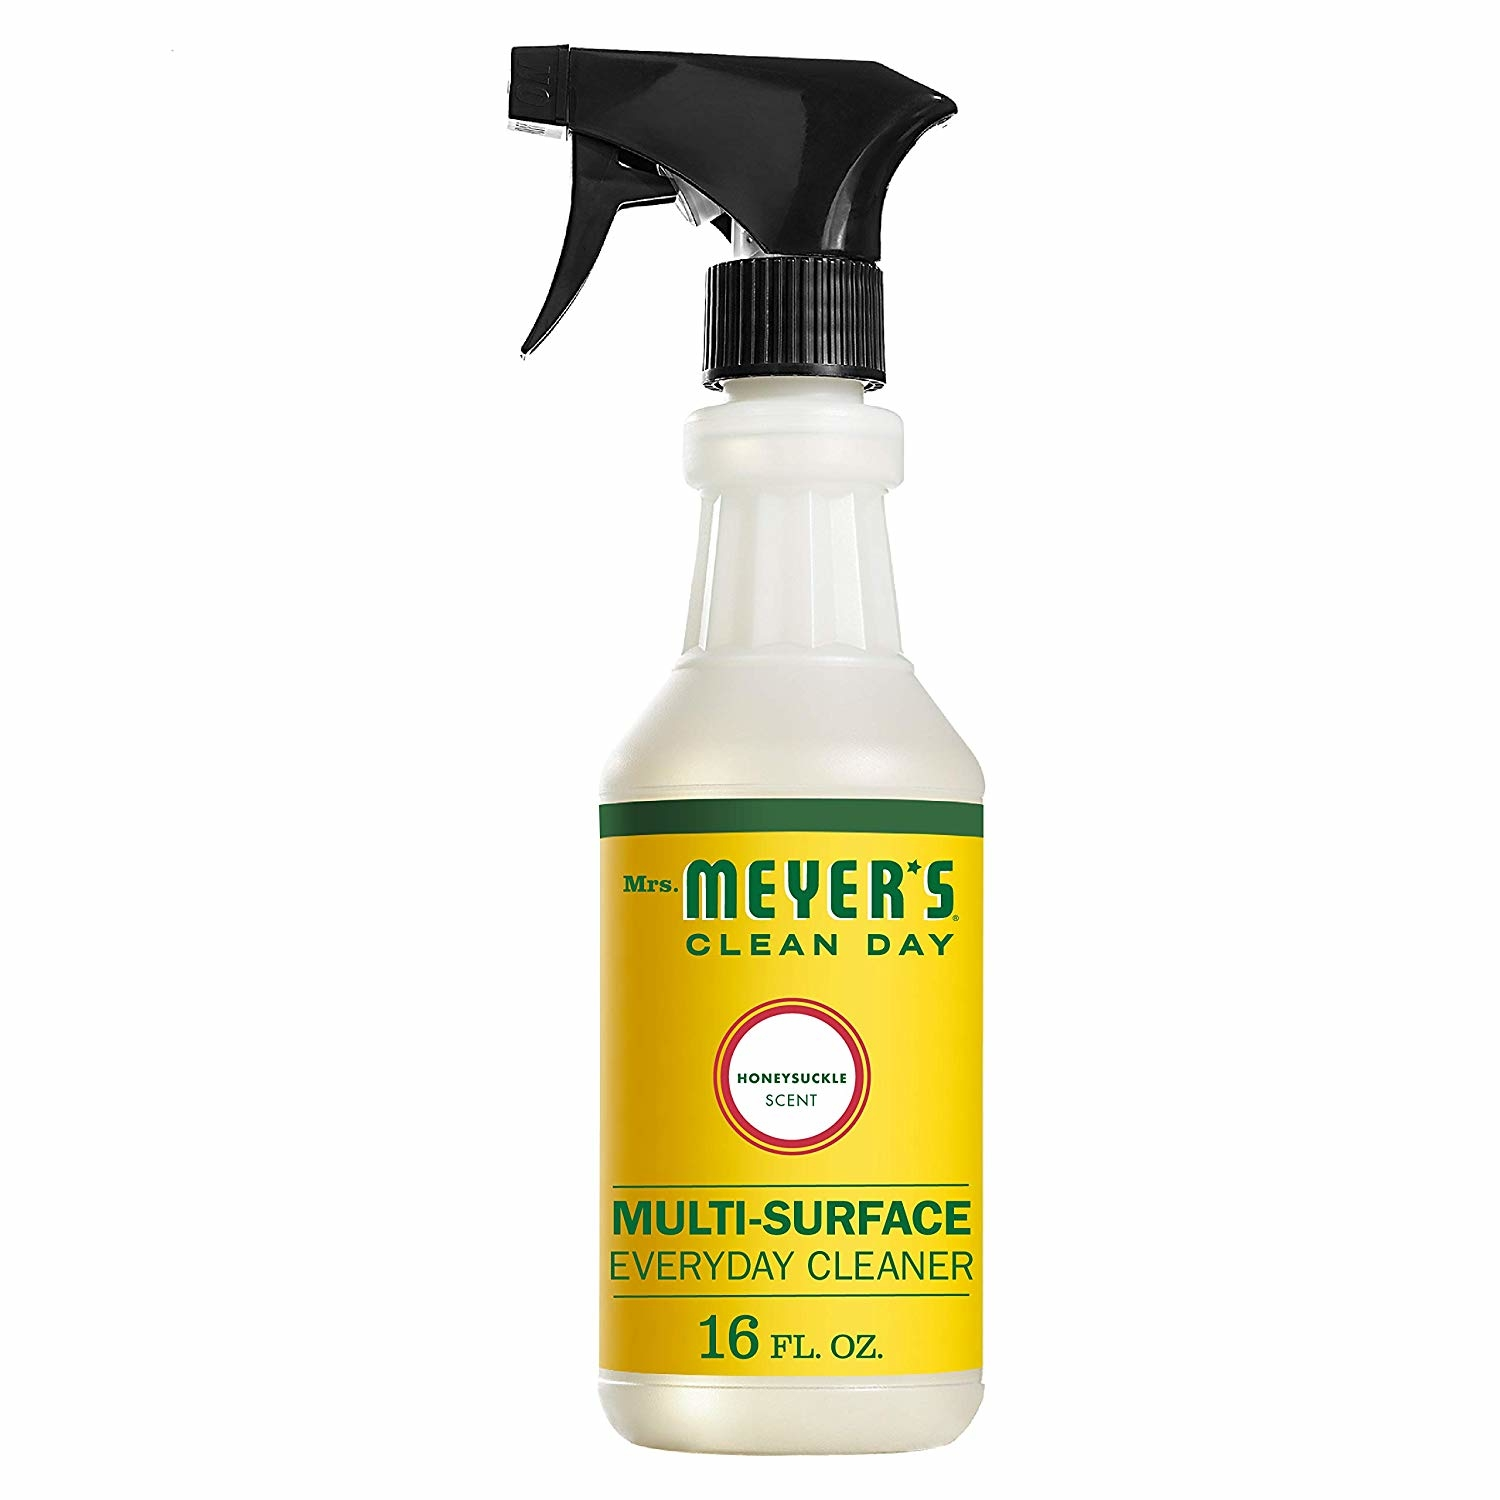 Mrs. Meyer's Clean Day Multi-Surface Everyday Cleaner, Lemon Verbena, Now $3.51